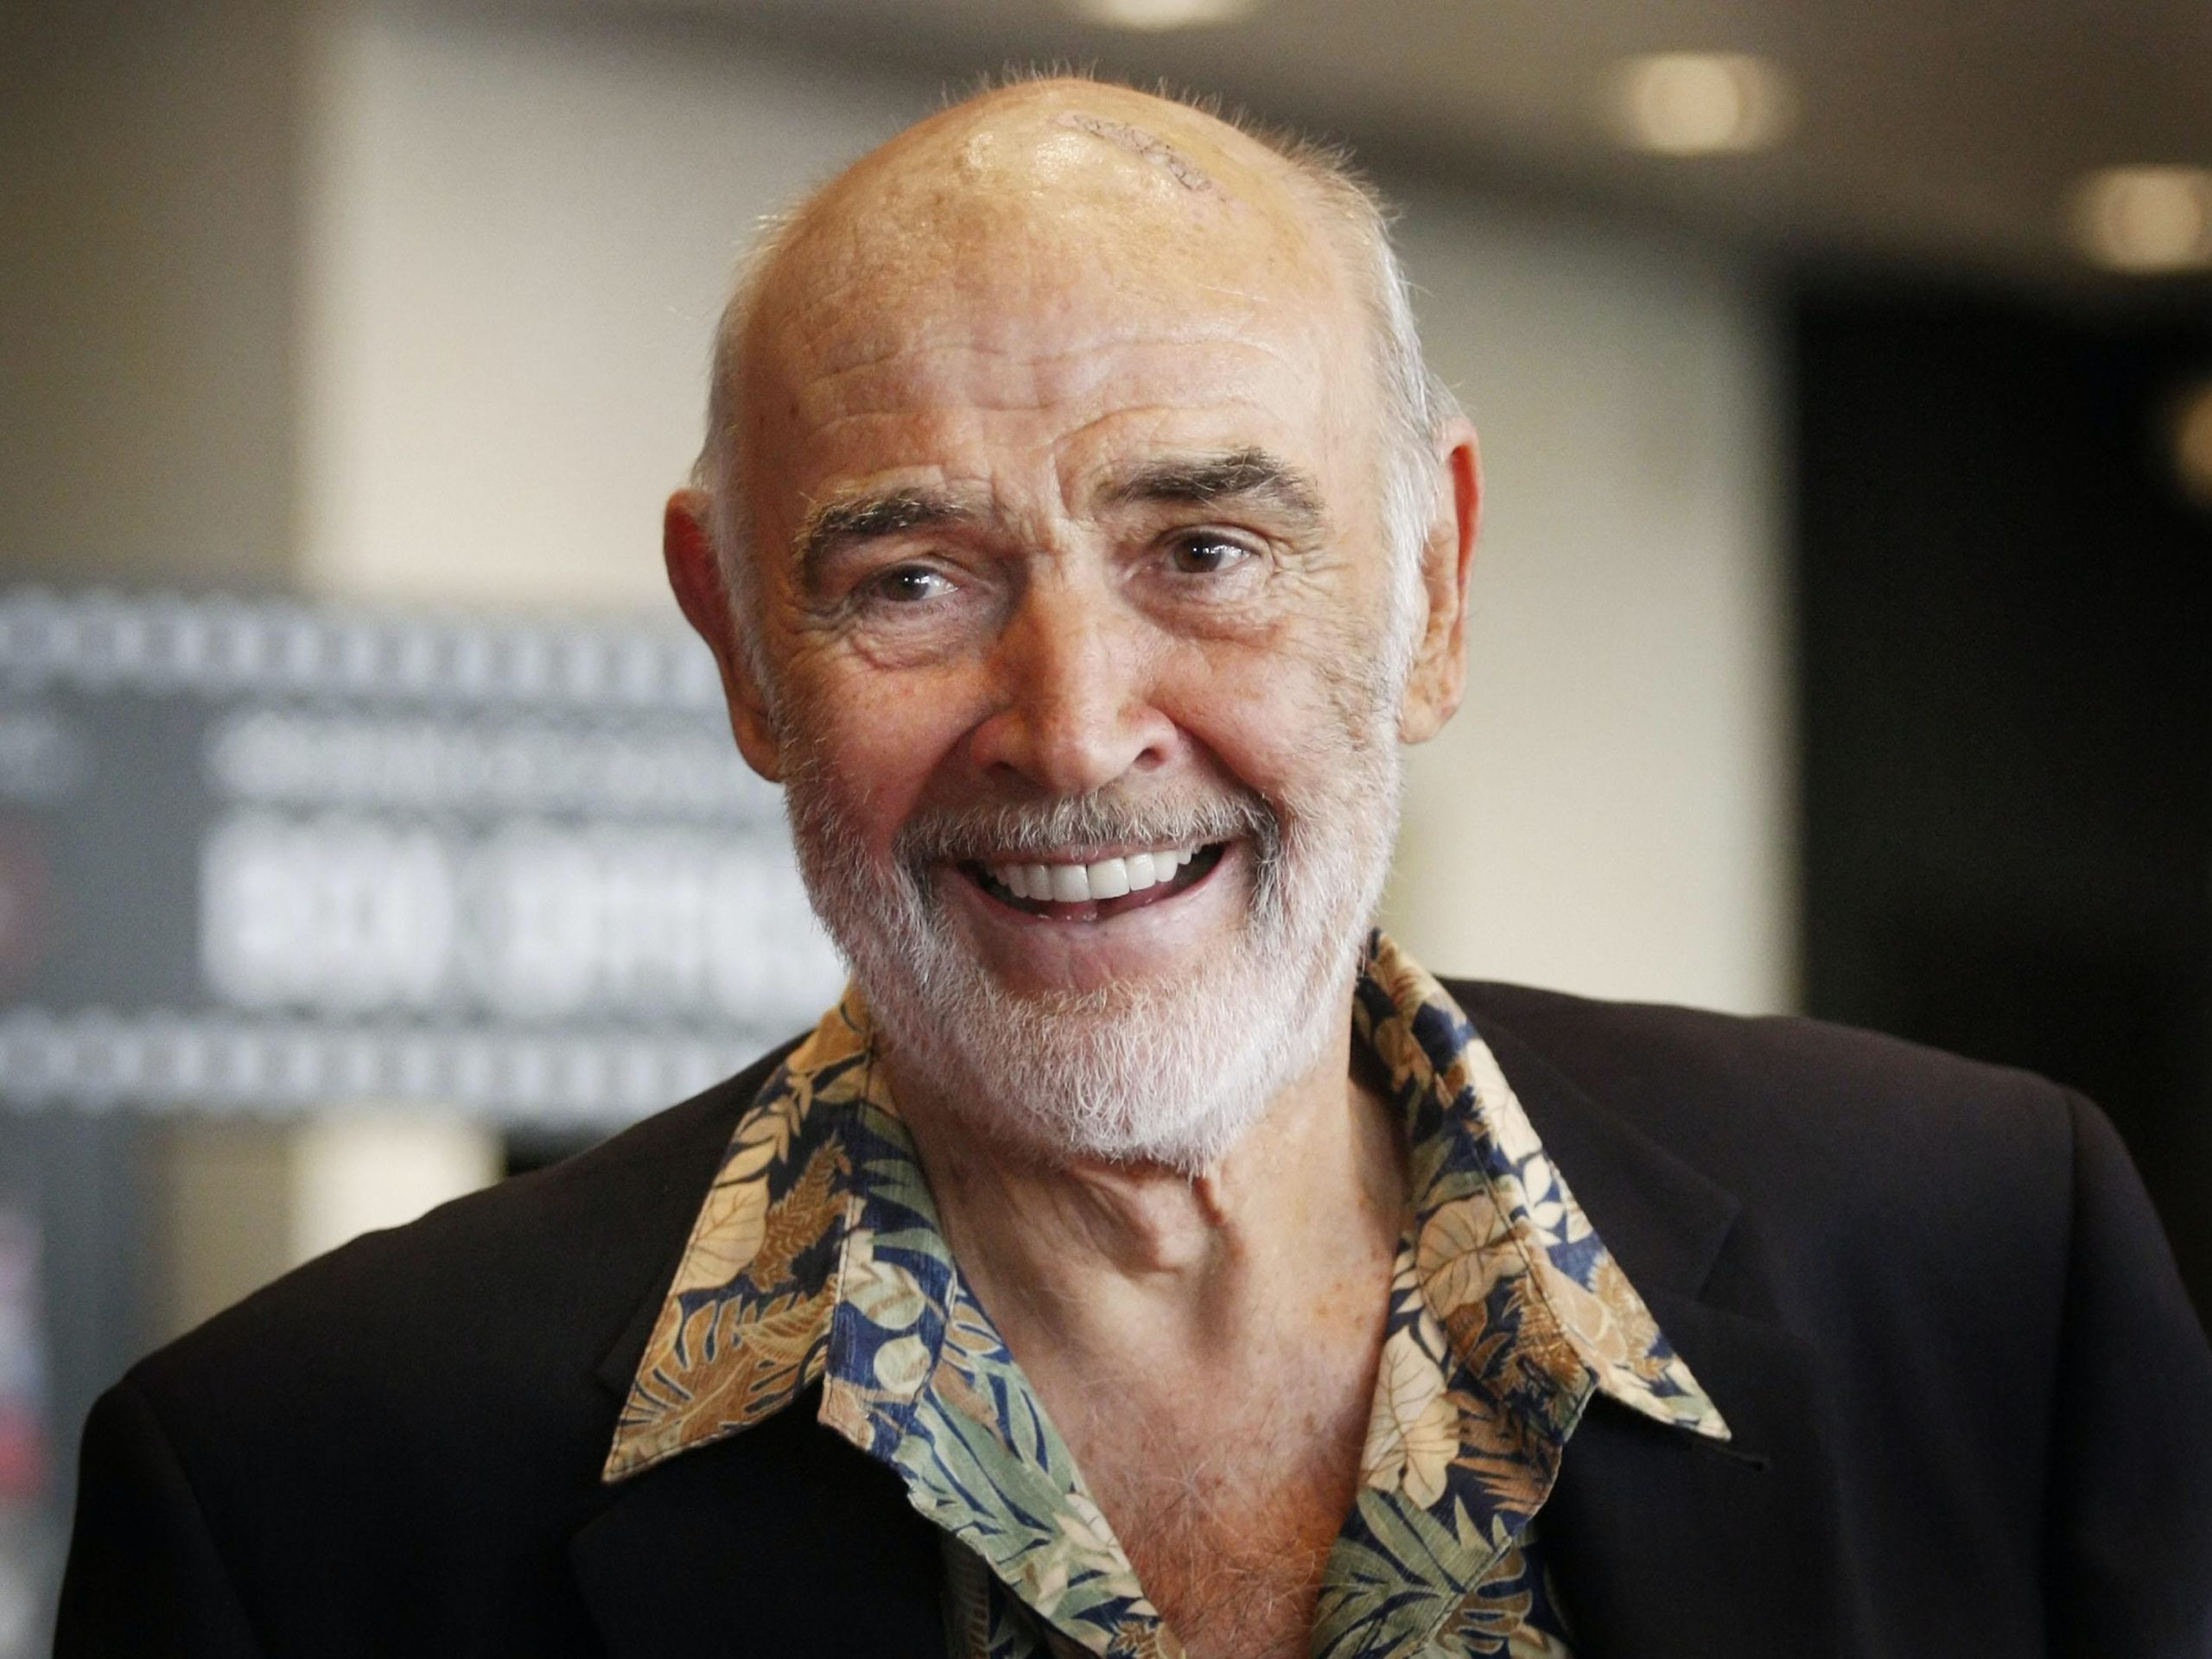 James Bond actor Sir Sean Connery dies at the age of 90, BBC reports